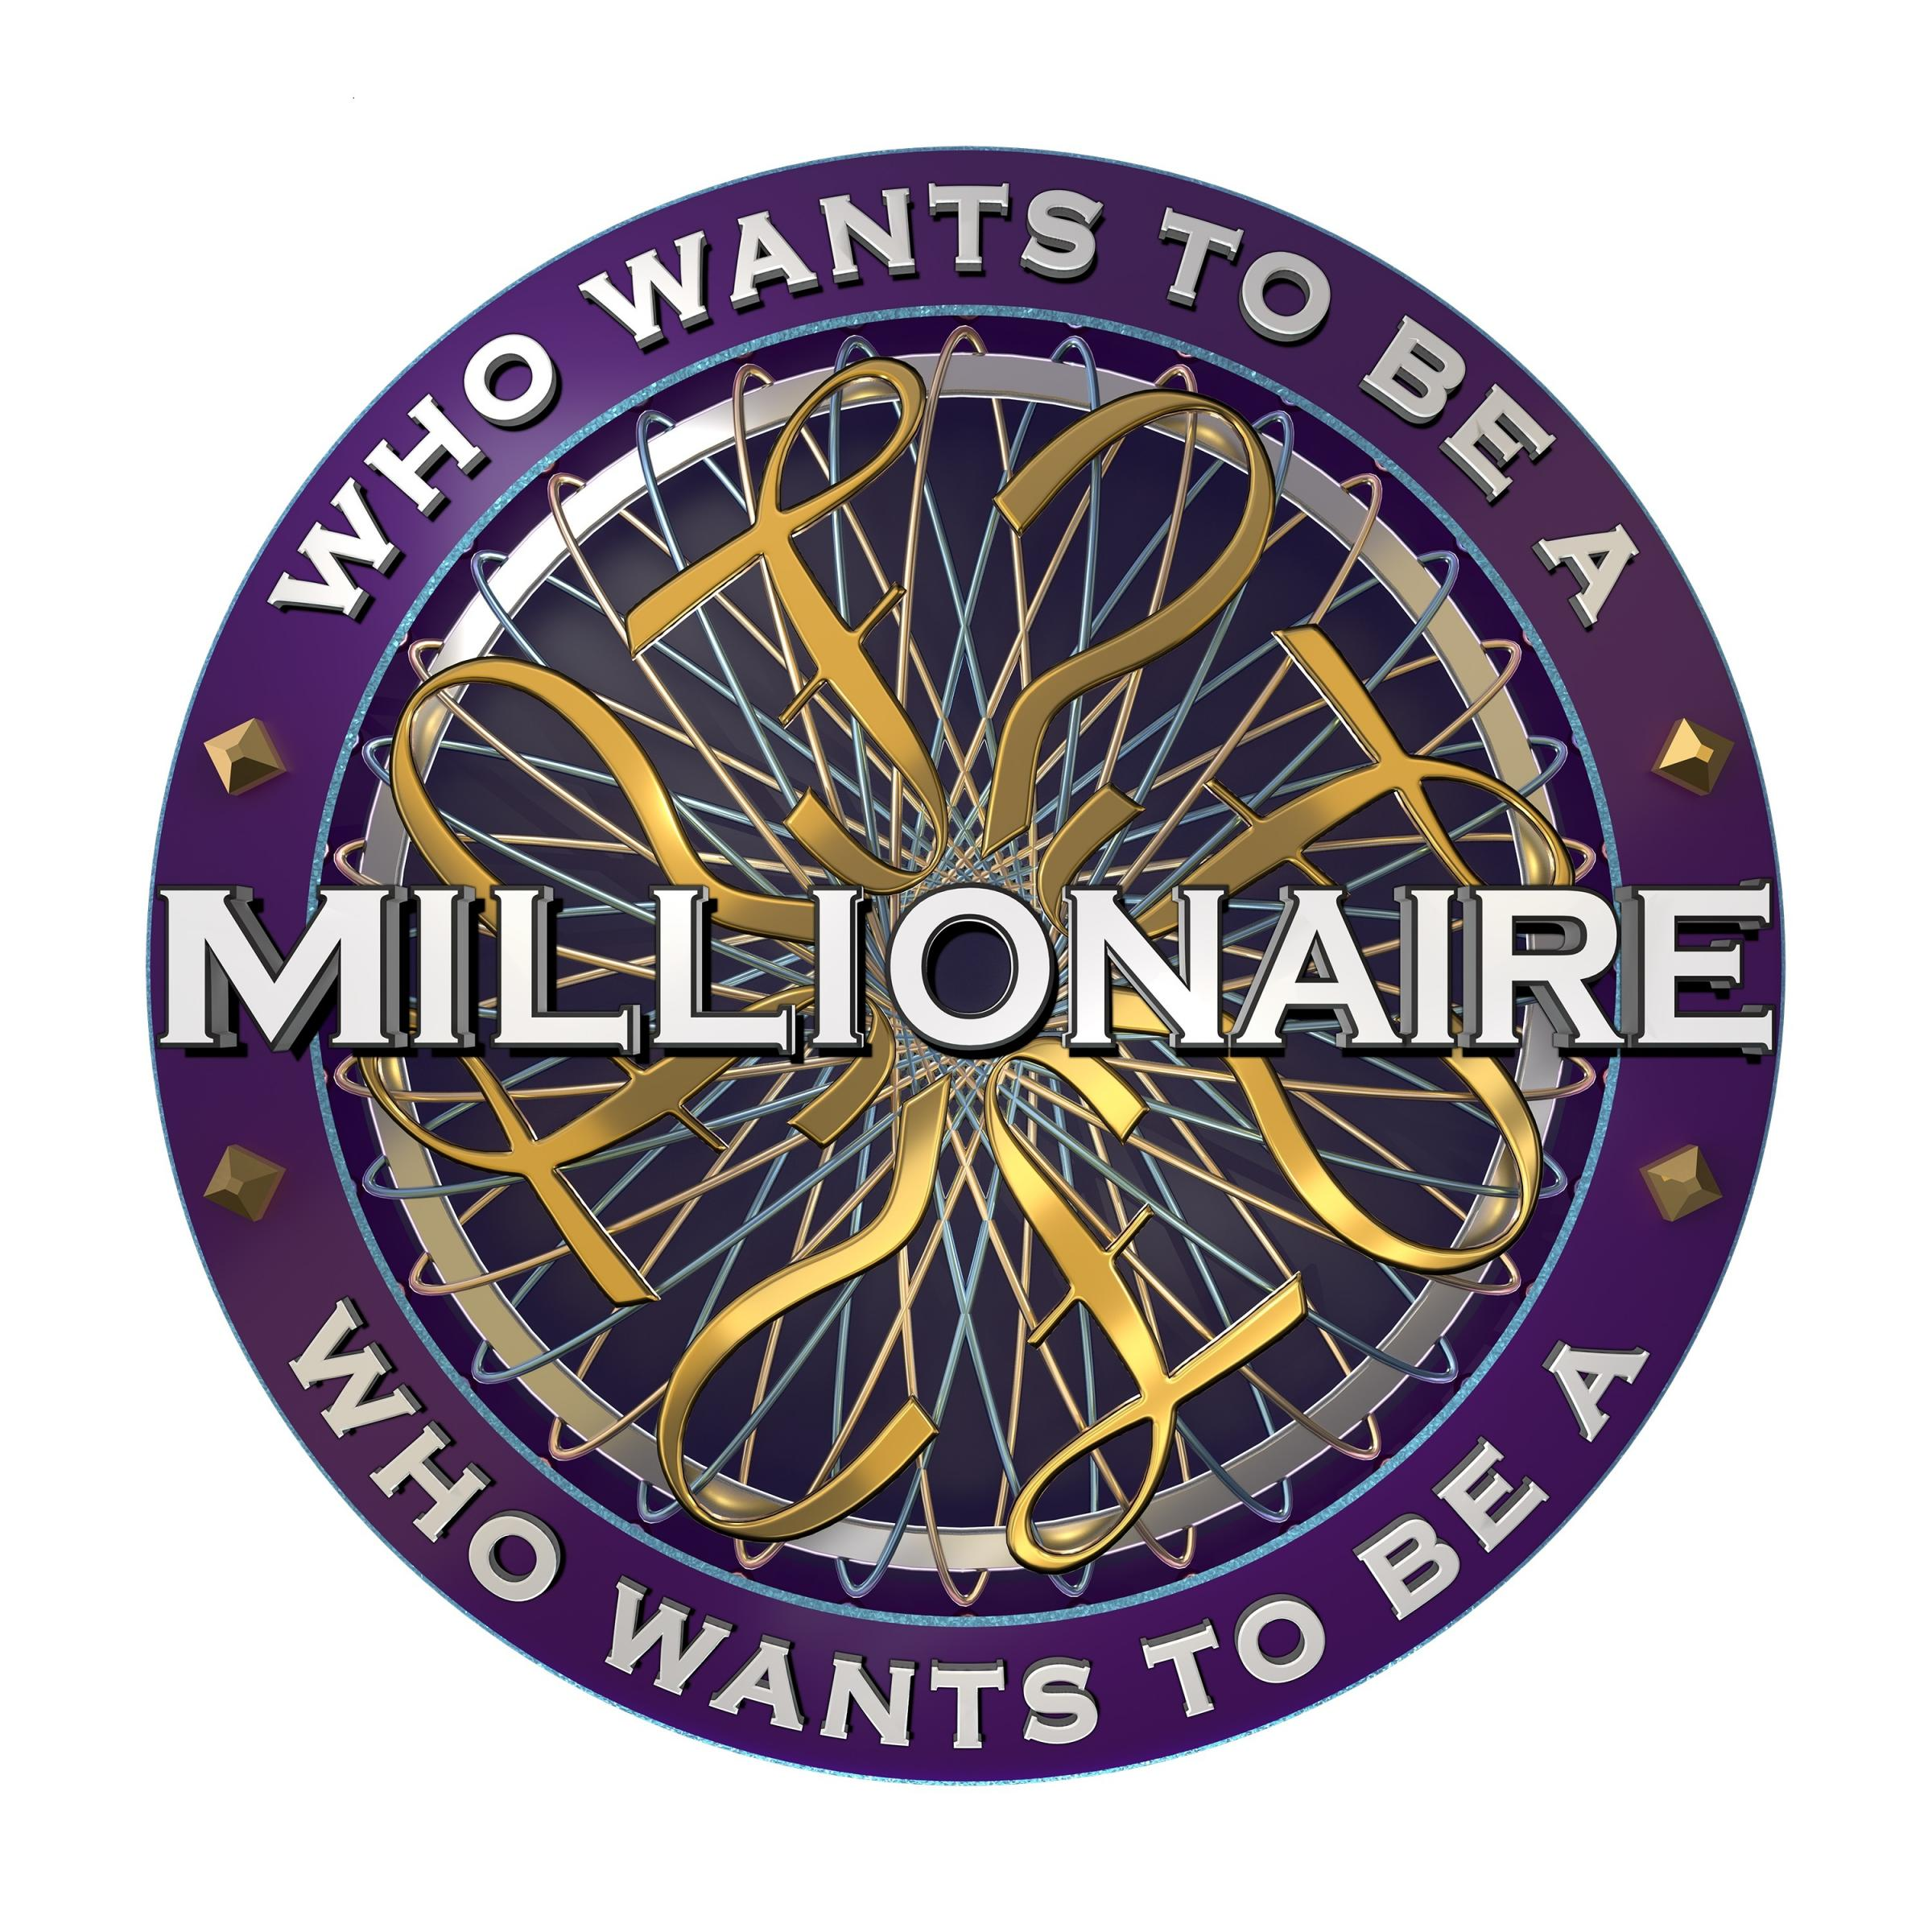 Who Wants To Be A Millionaire TV show seeks contestants